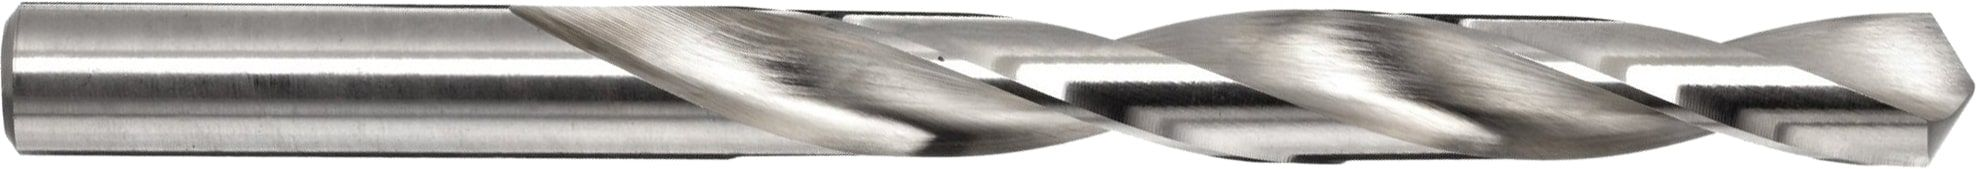 Drill bit with a steep helix angle